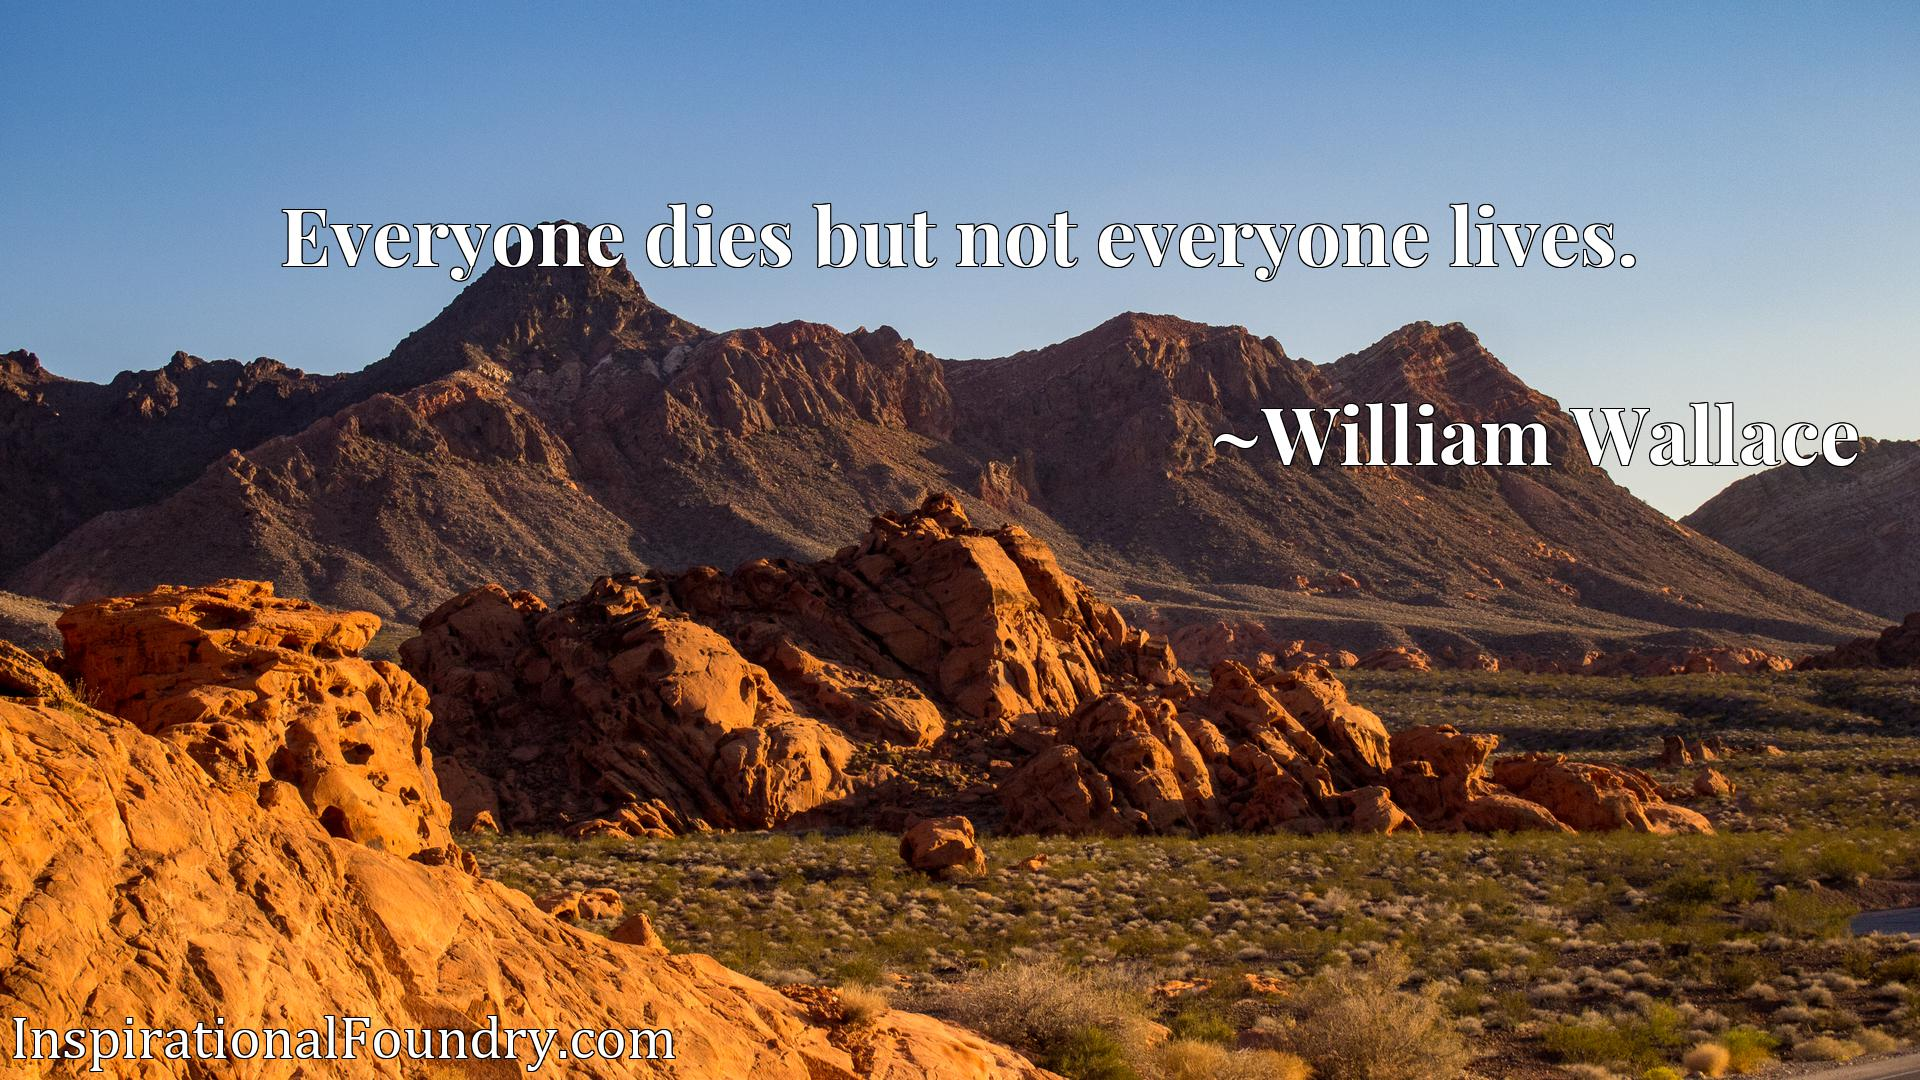 Everyone dies but not everyone lives.